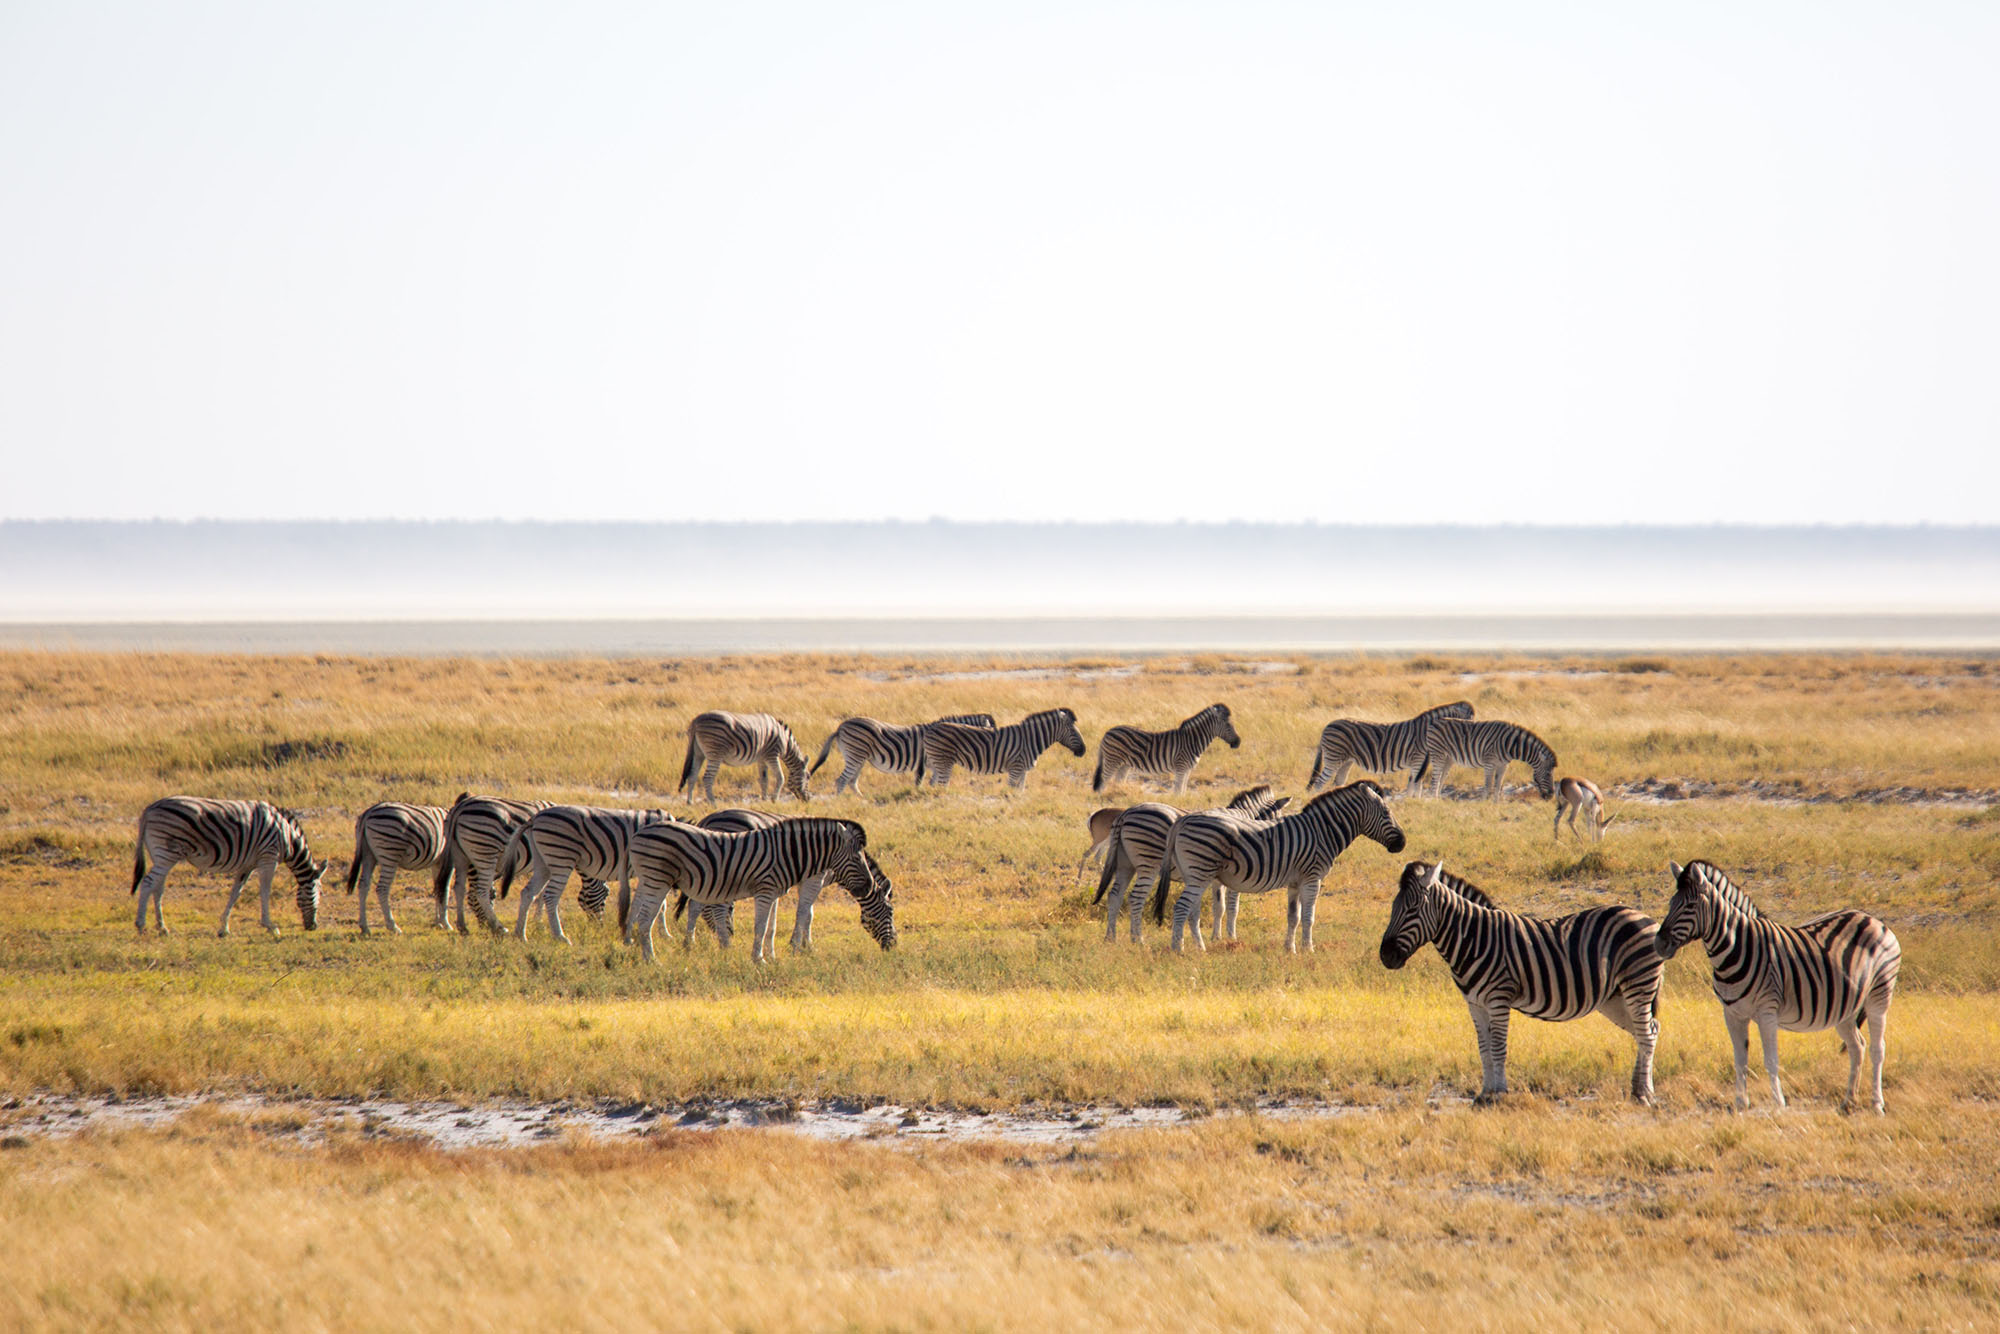 Zebras in Etosha National Park.